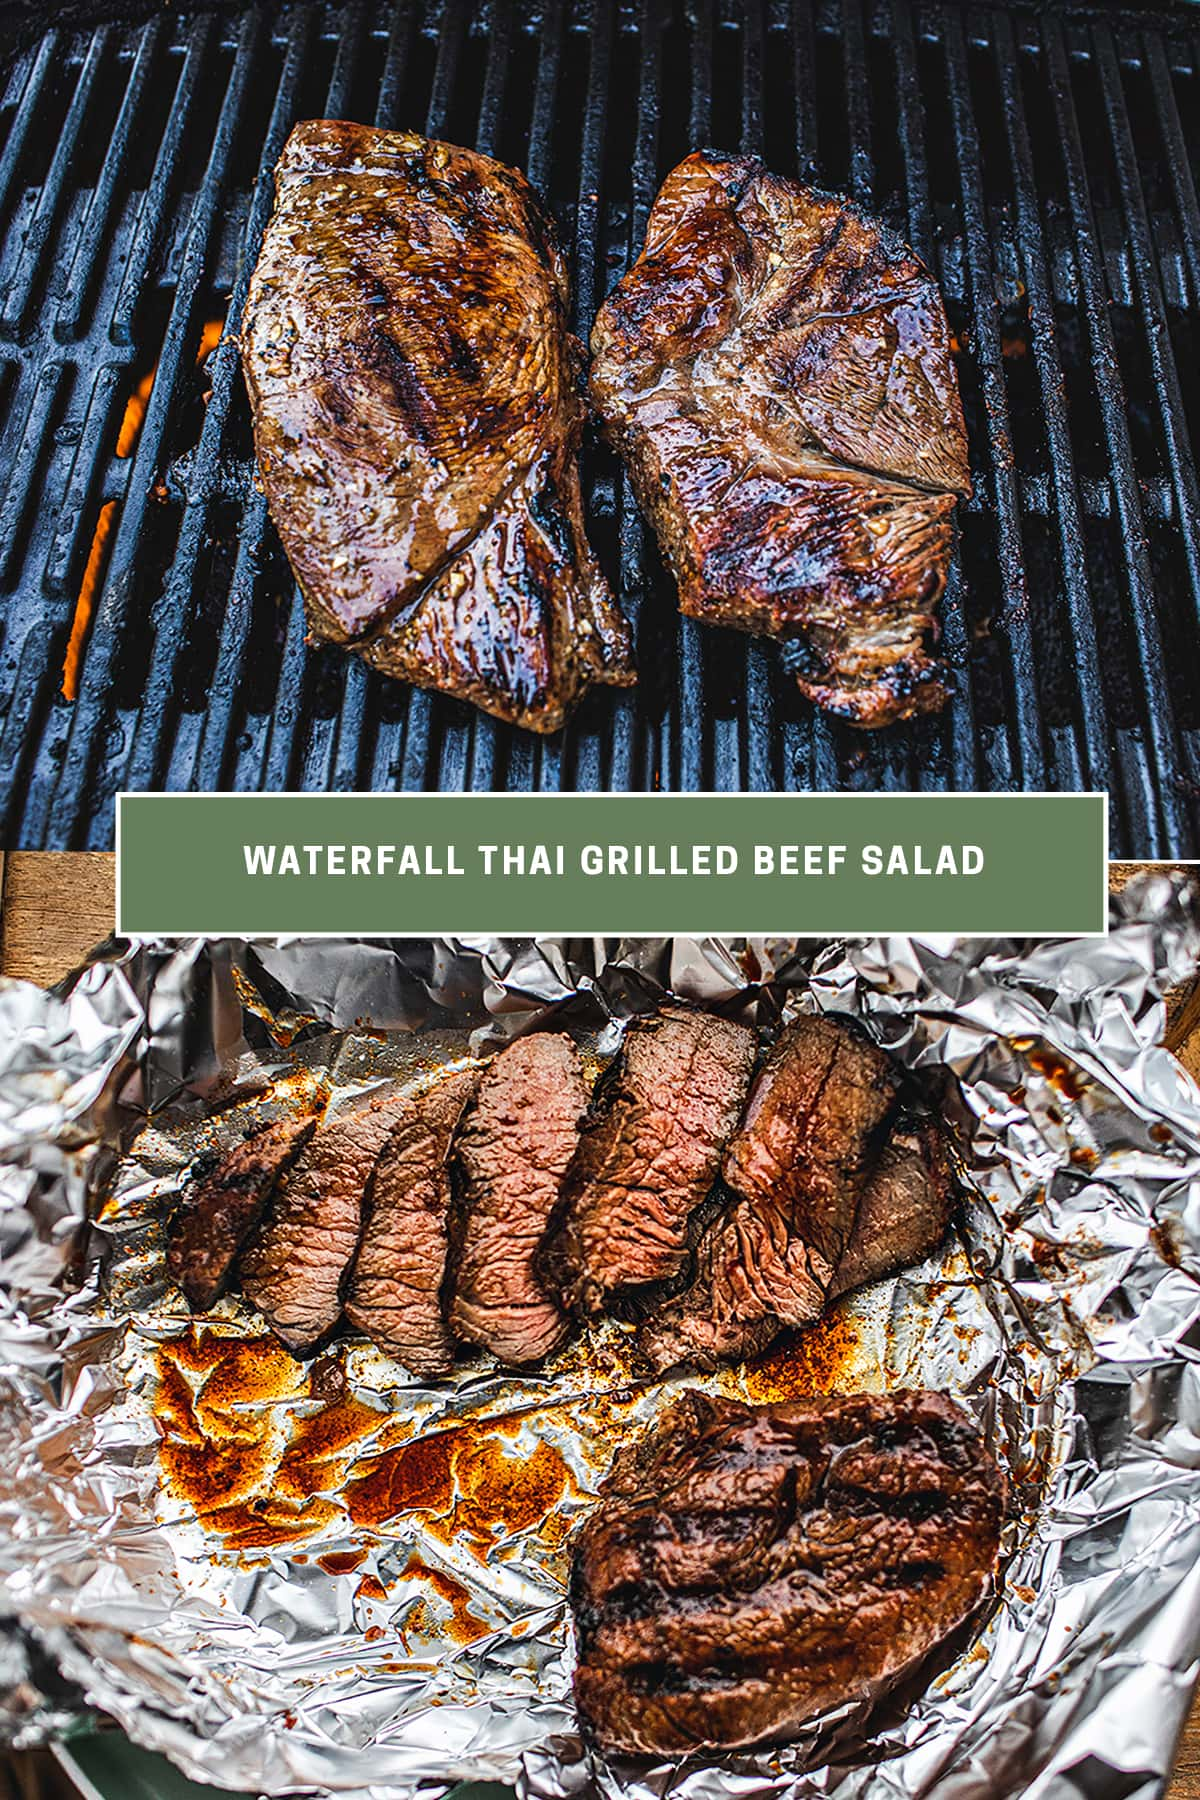 2 pieces of steak on a grill and sliced steak in aluminum foil